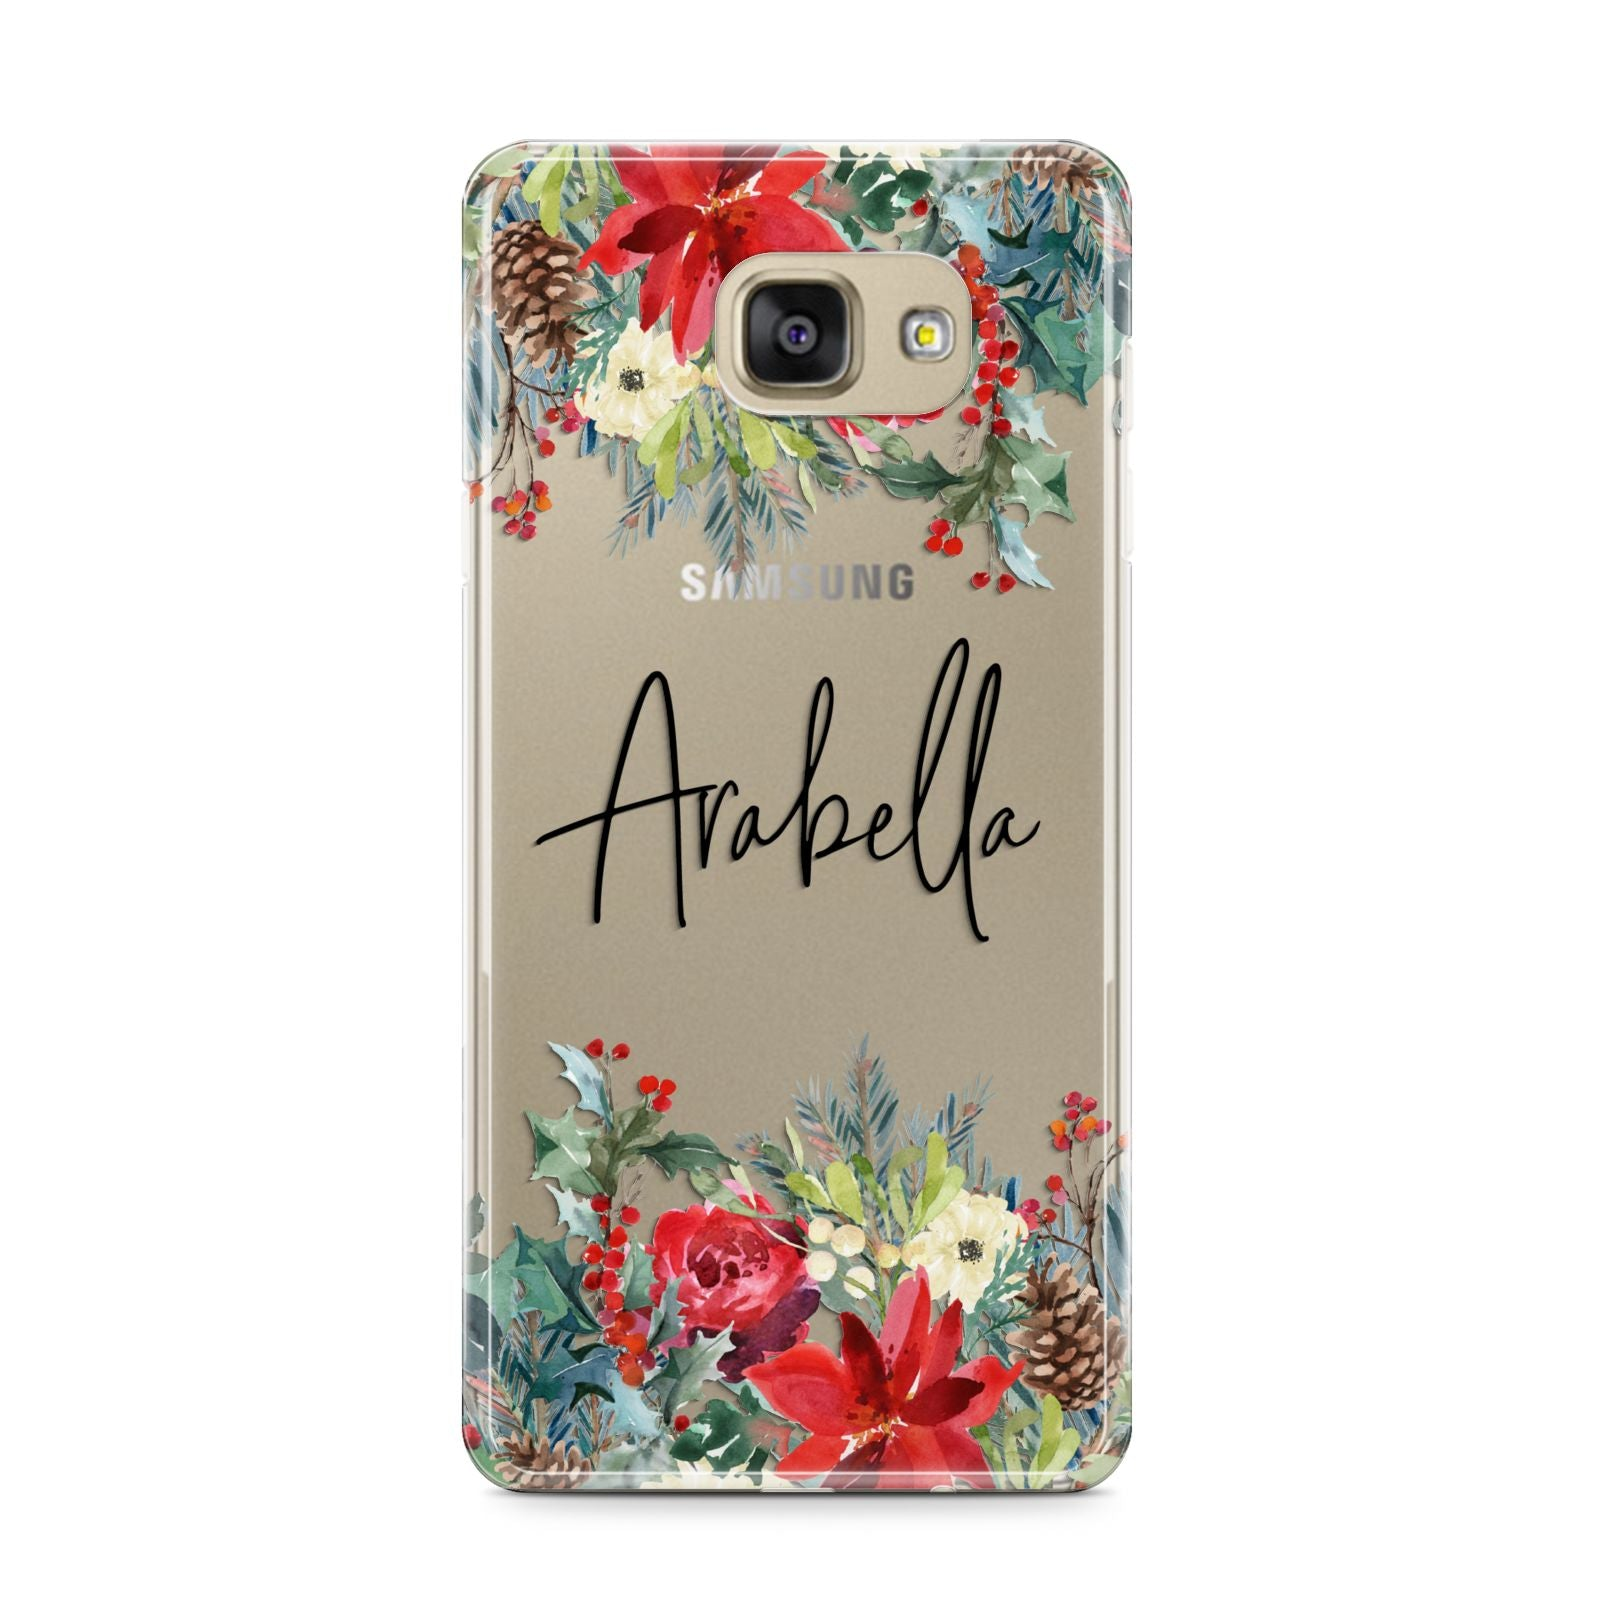 Personalised Floral Winter Arrangement Samsung Galaxy A9 2016 Case on gold phone